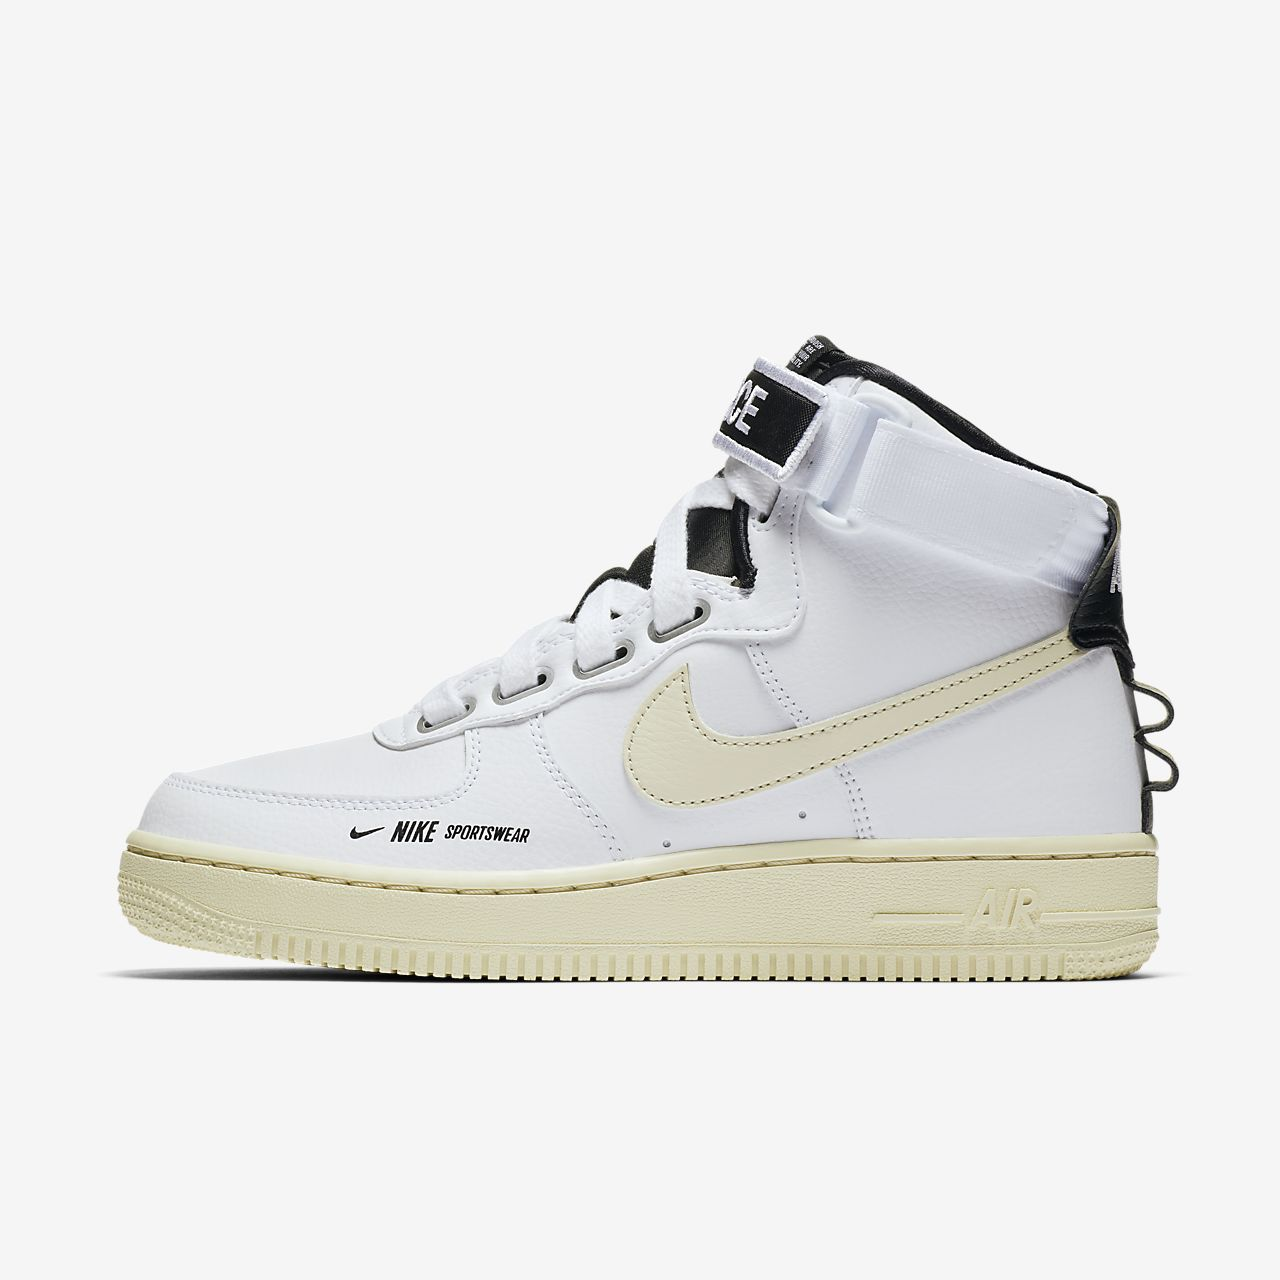 b90c9600107e ... discount code for nike air force 1 high utility shoe 41806 ce164